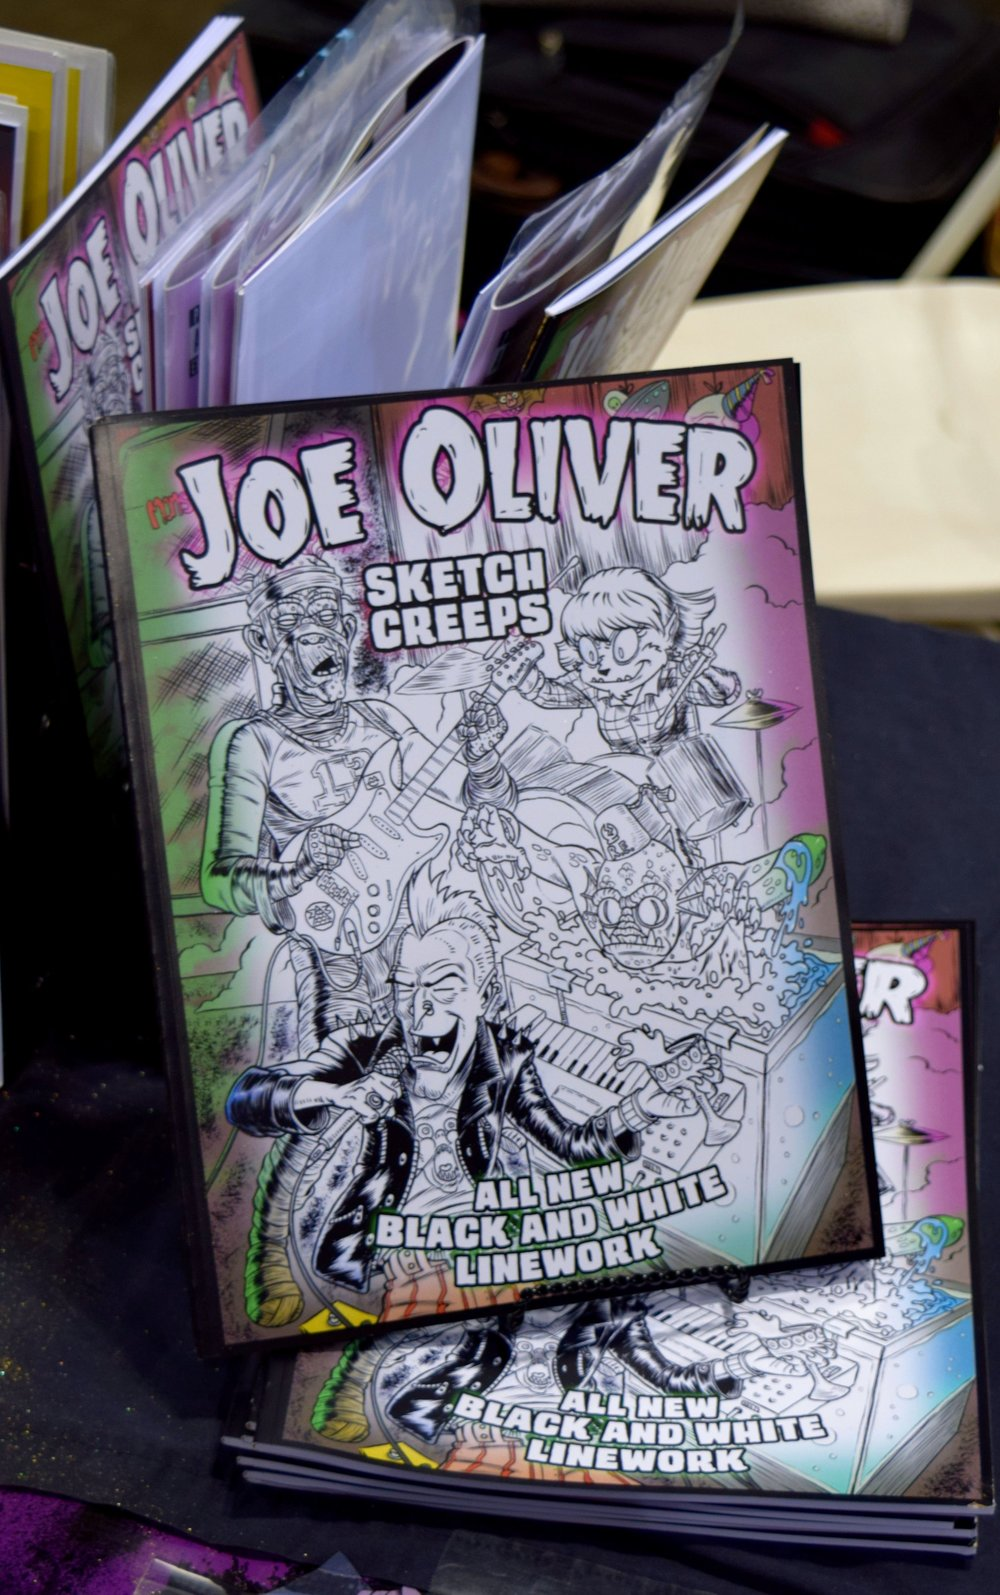 Joe Oliver Sketch Creeps sketch book.